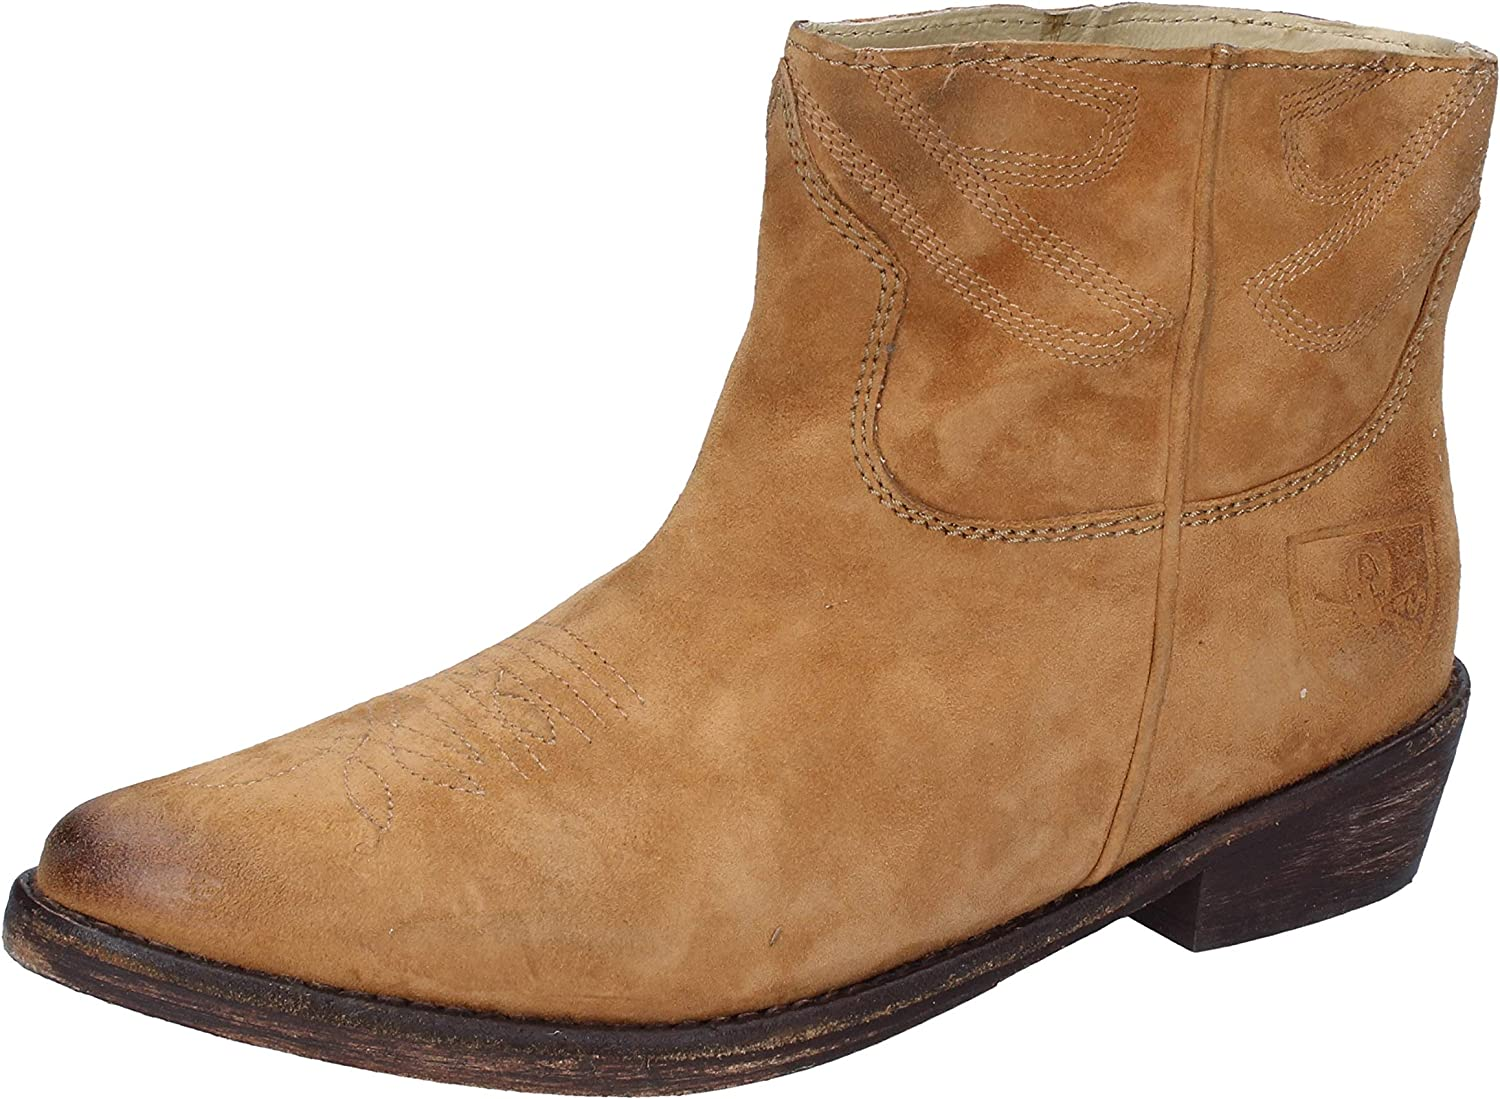 MR. WOLF Boots Womens Suede Brown